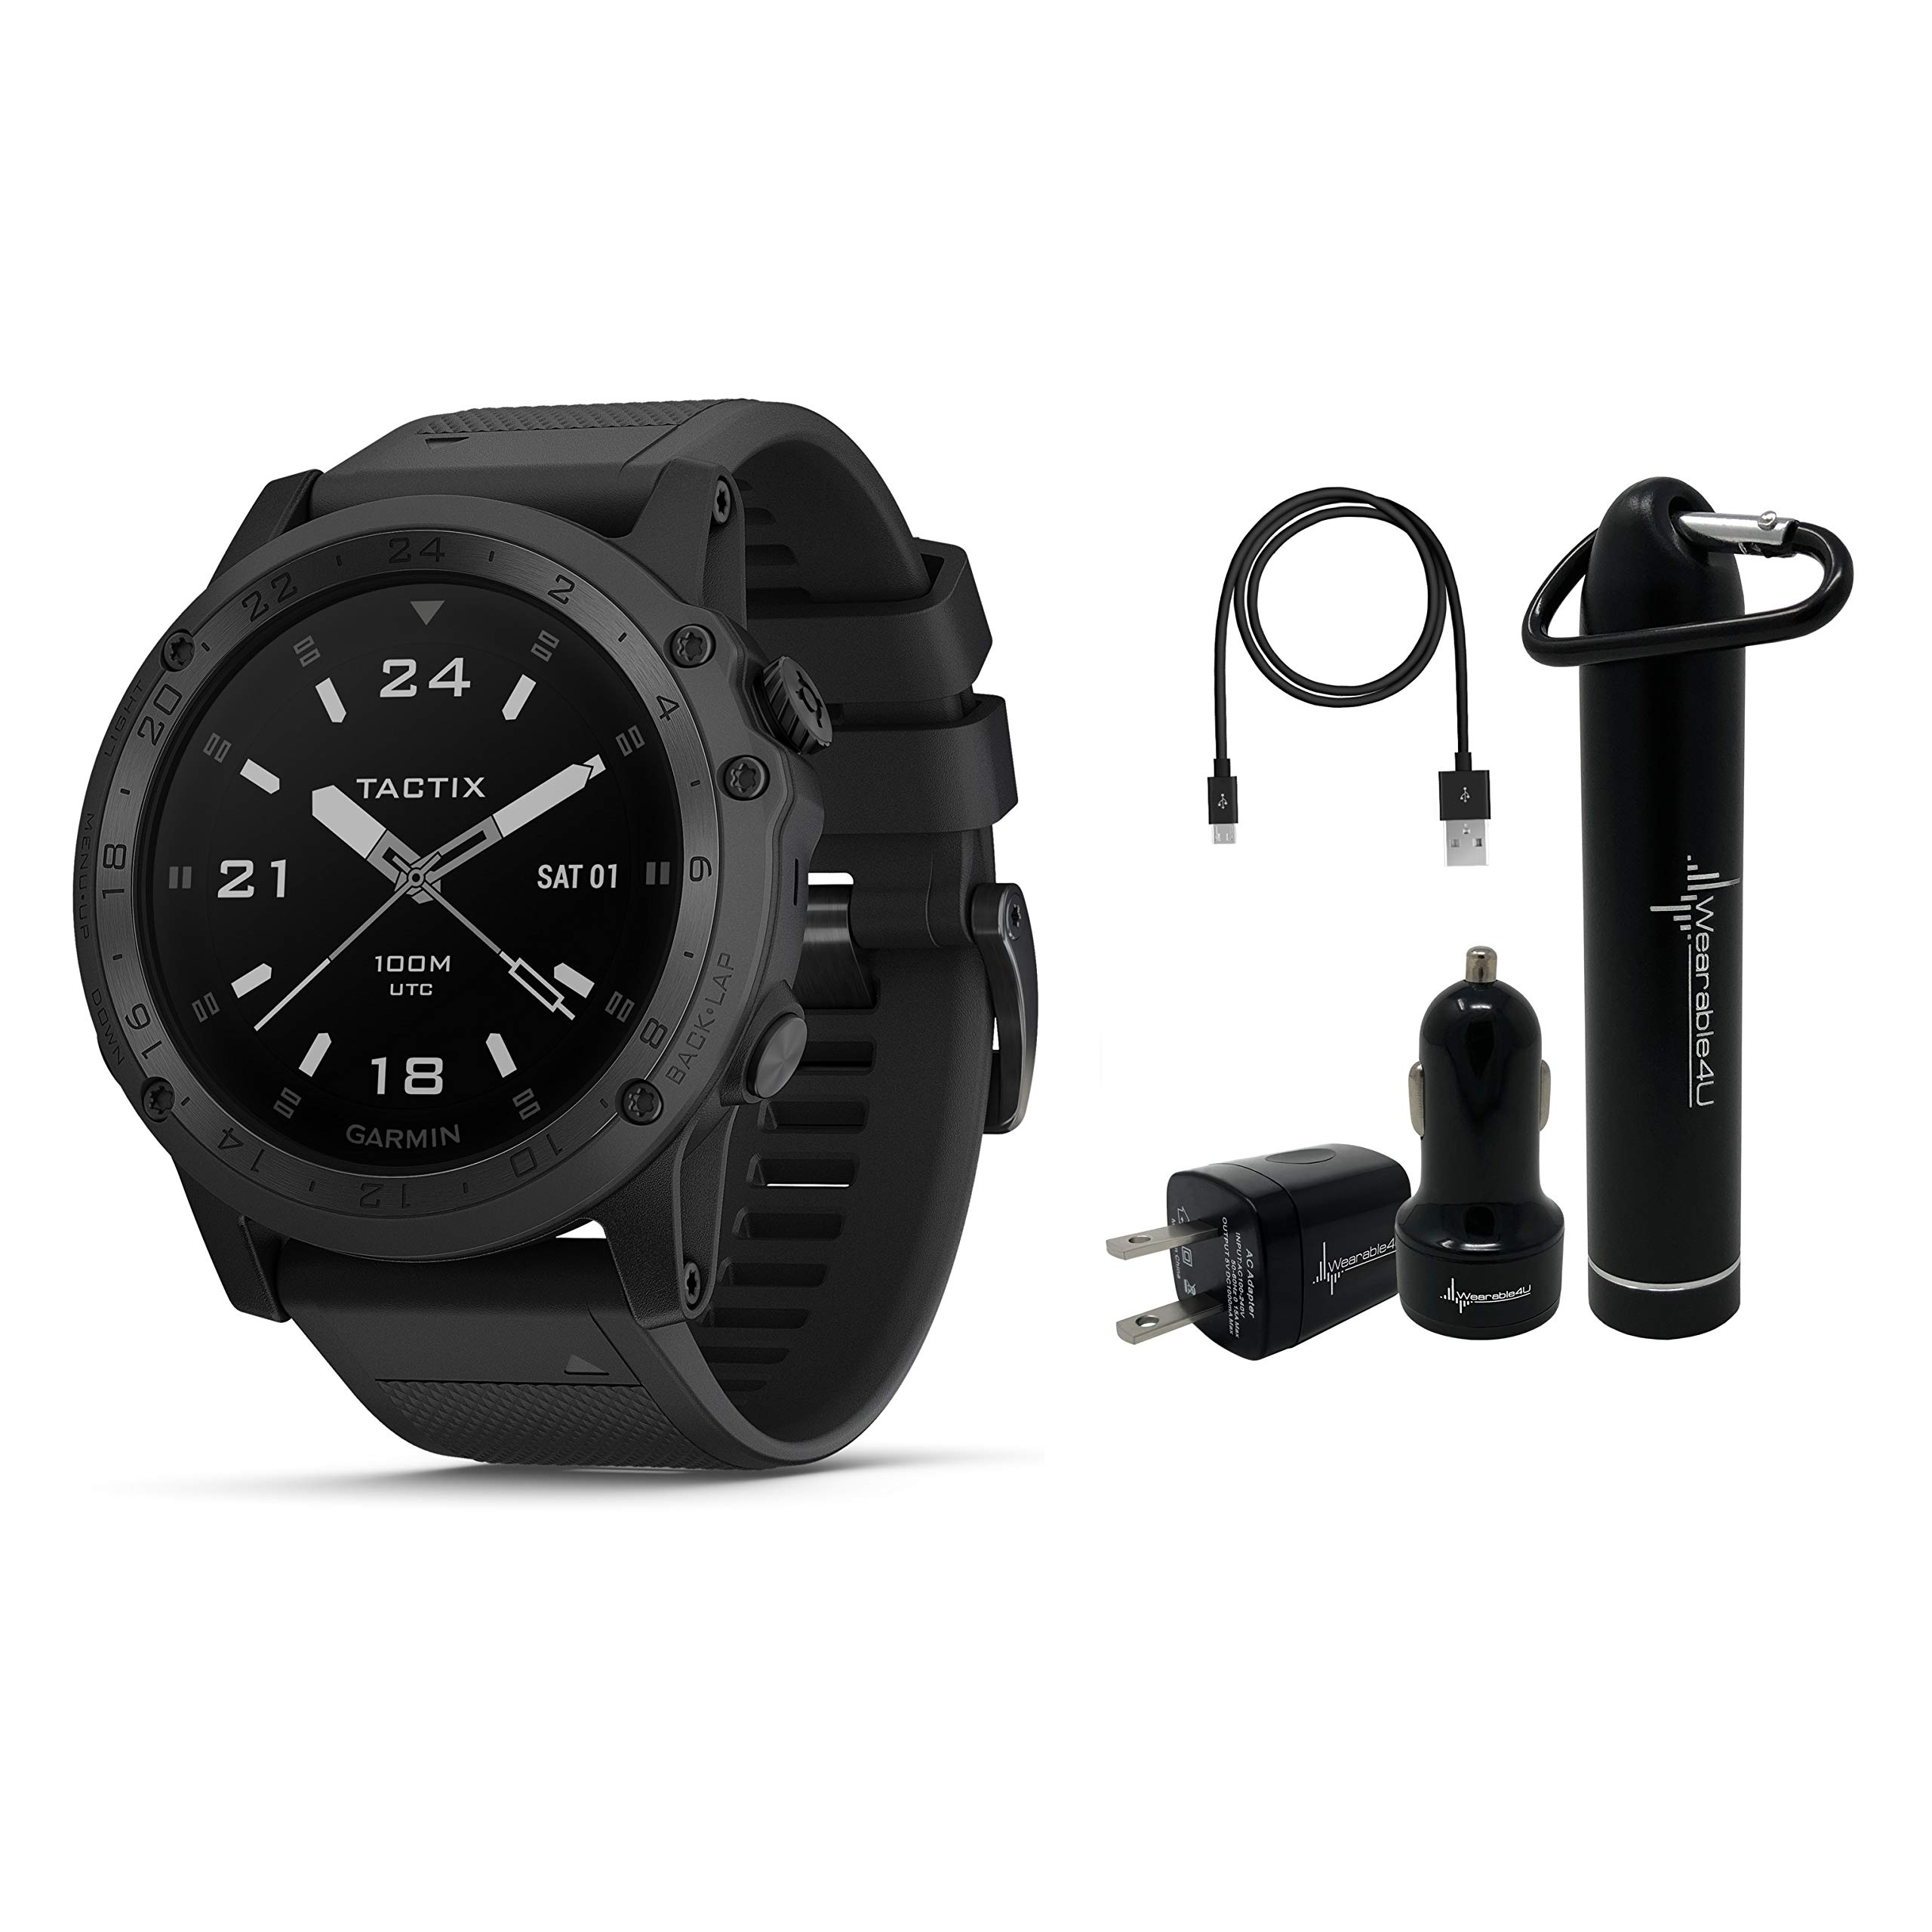 Garmin Tactix Charlie Premium Tactical GPS Watch with TOPO Maps and Wearable4U Ultimate Power Pack Bundle by Wearable4u